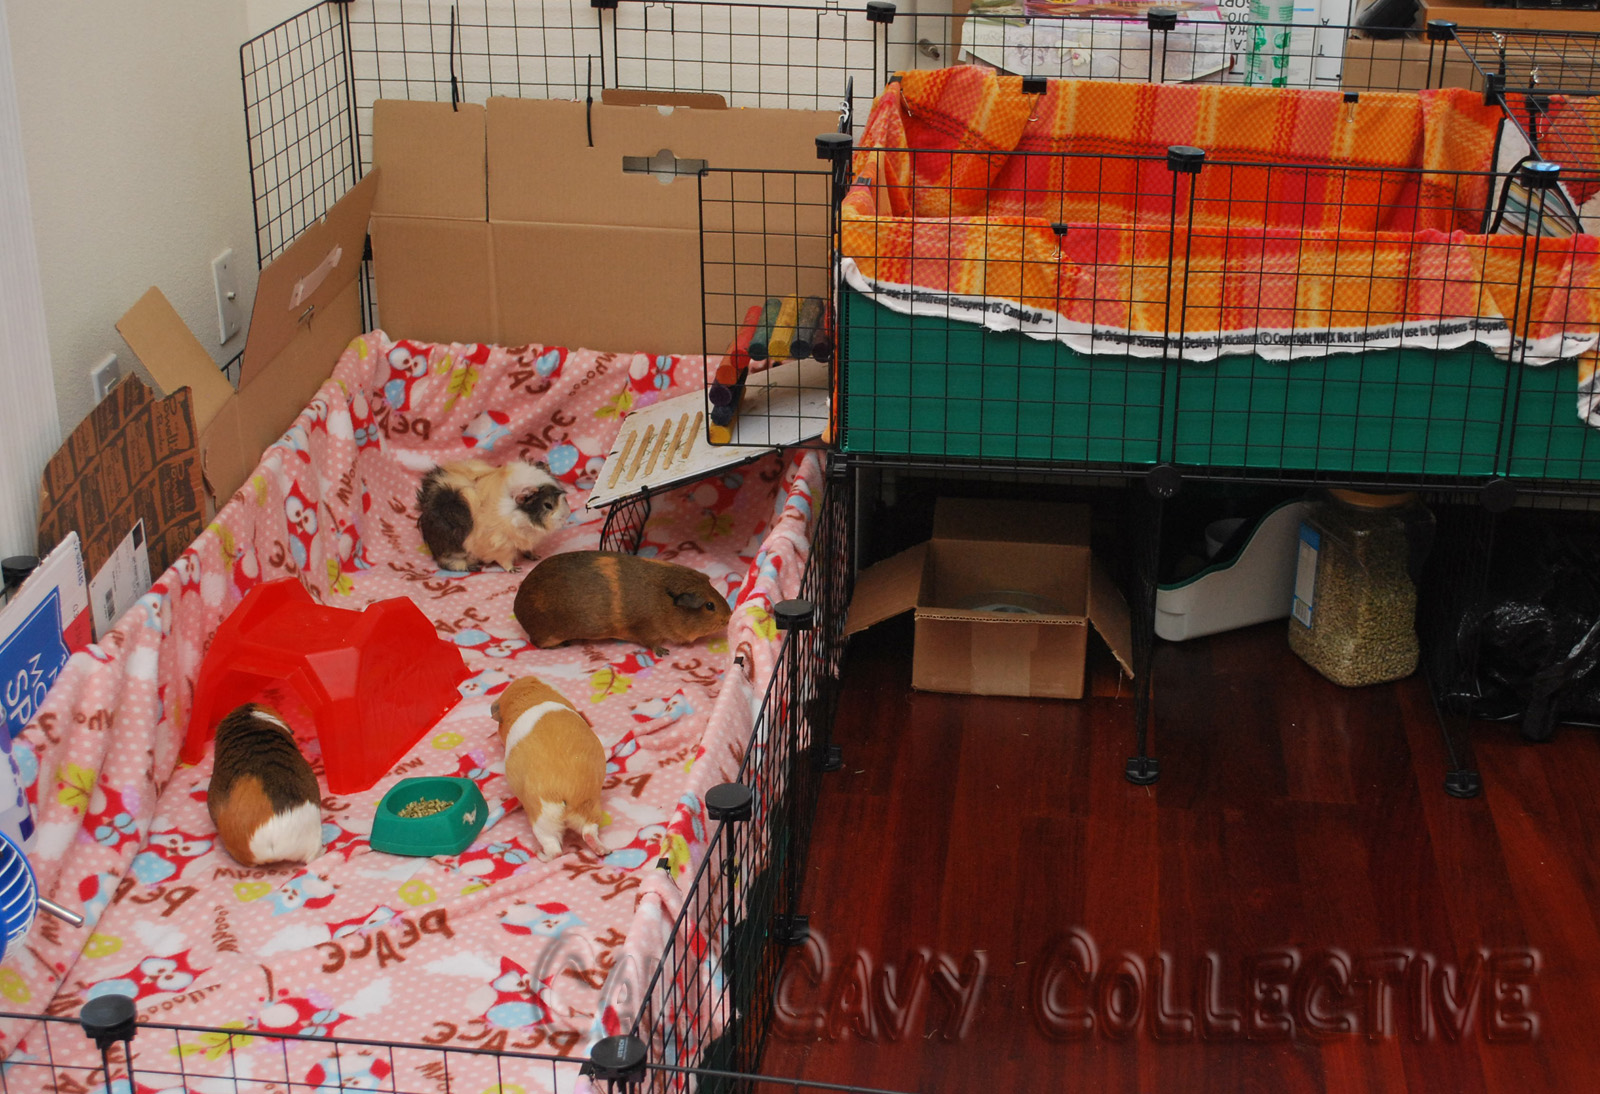 Cali cavy collective a blog about all things guinea pig for Guinea pig cages for two